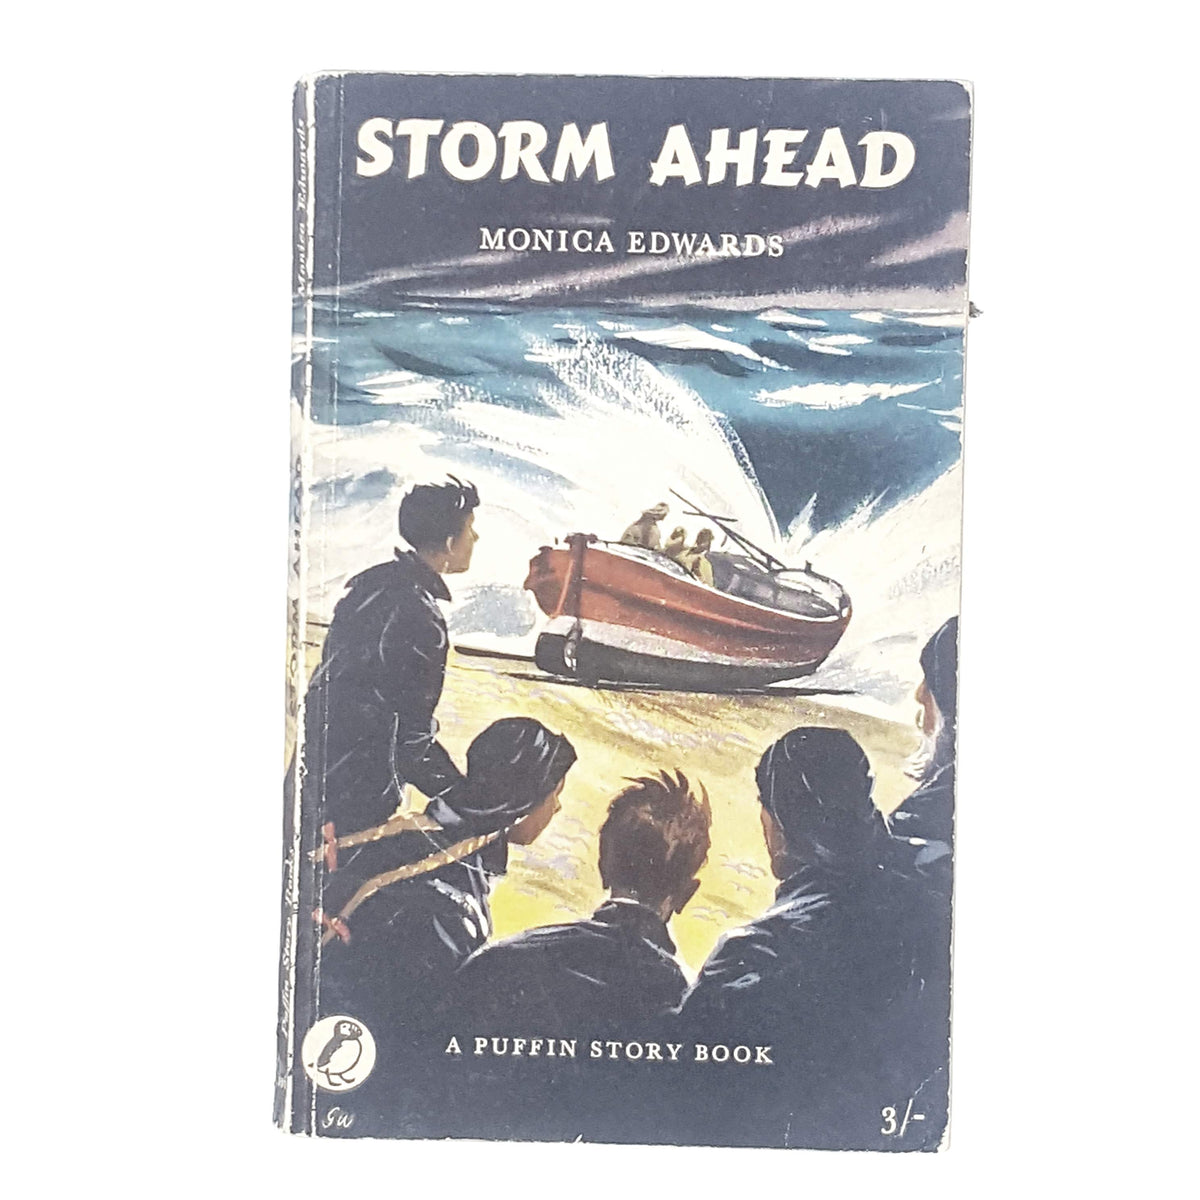 Storm Ahead by Monica Edwards 1957